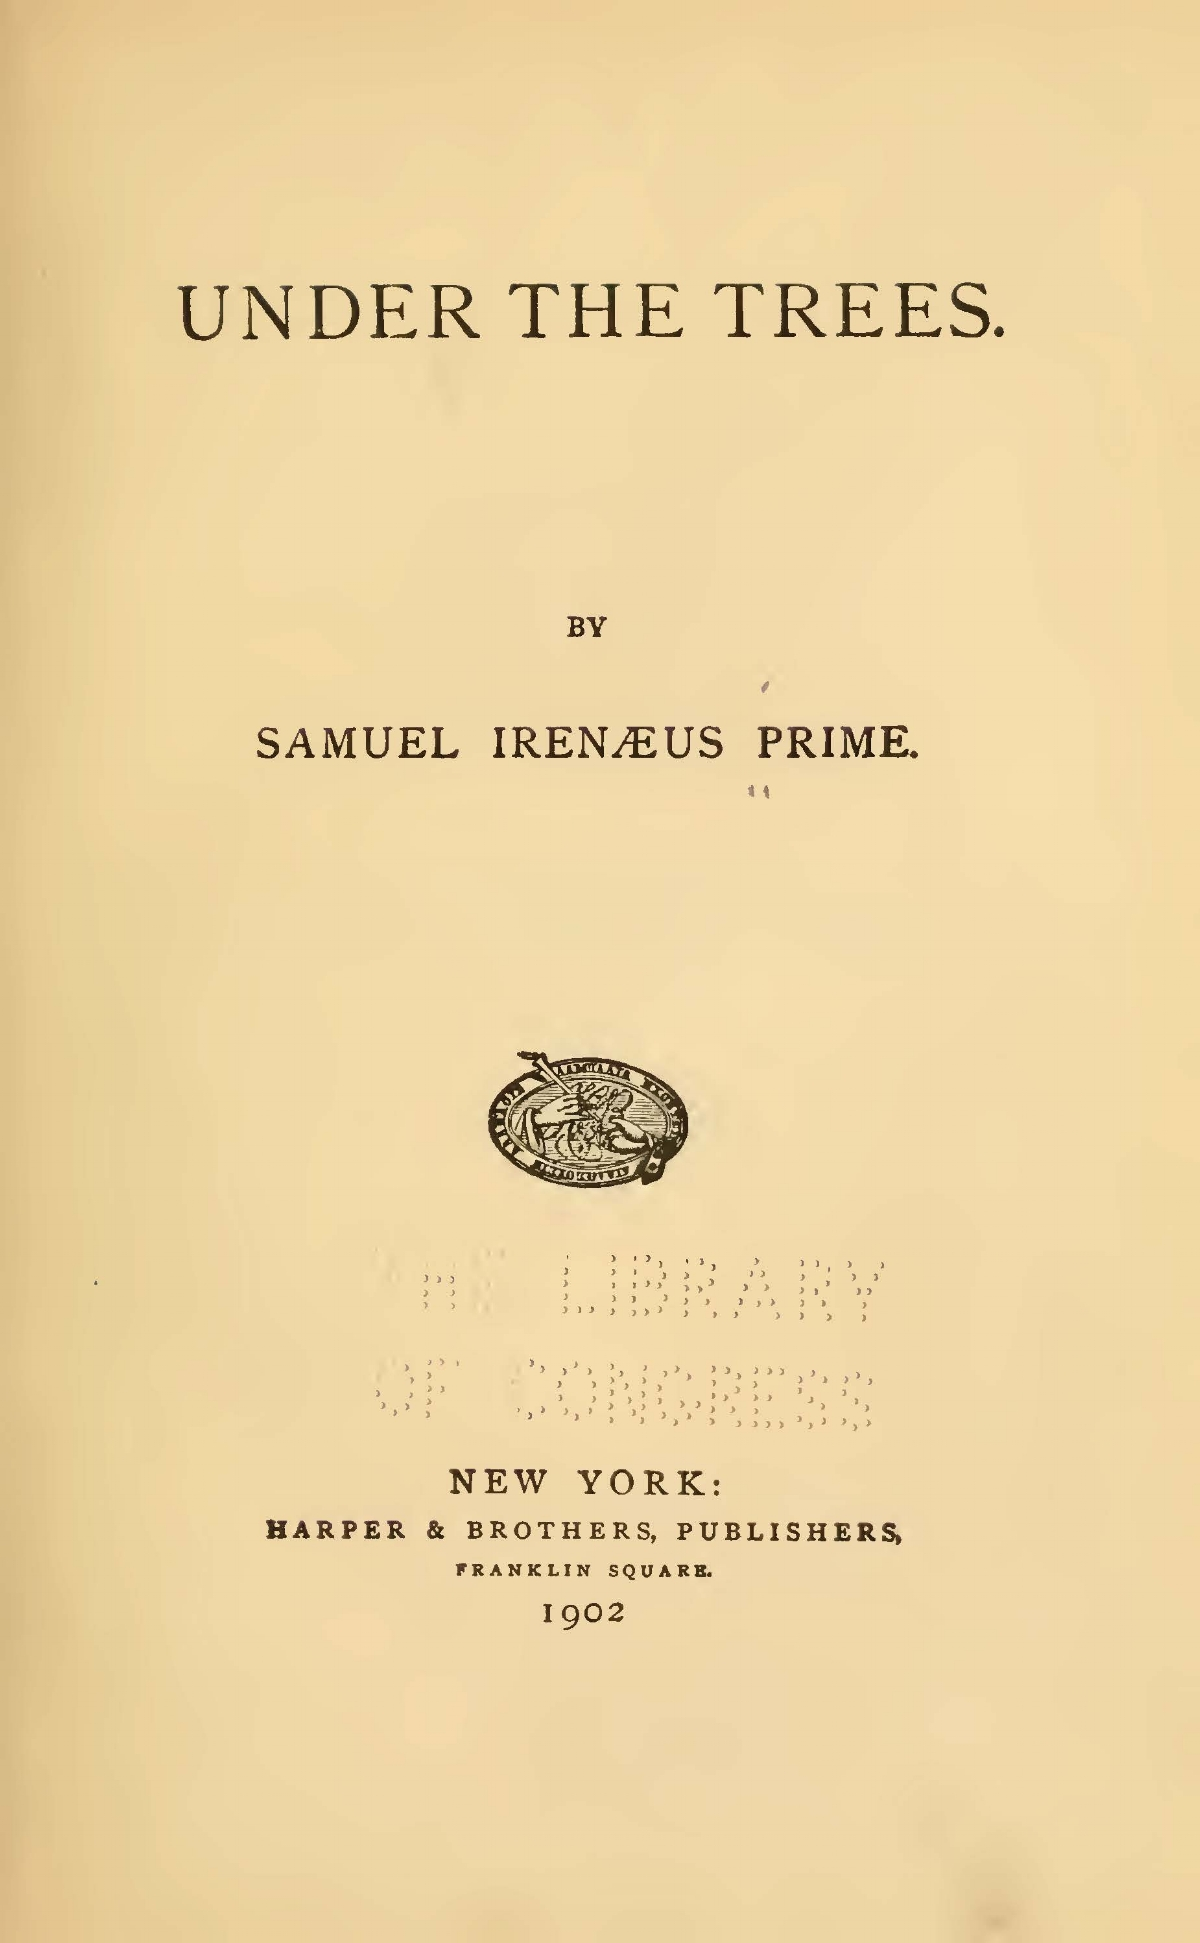 Prime, Samuel Irenaeus, Under the Trees Title Page.jpg